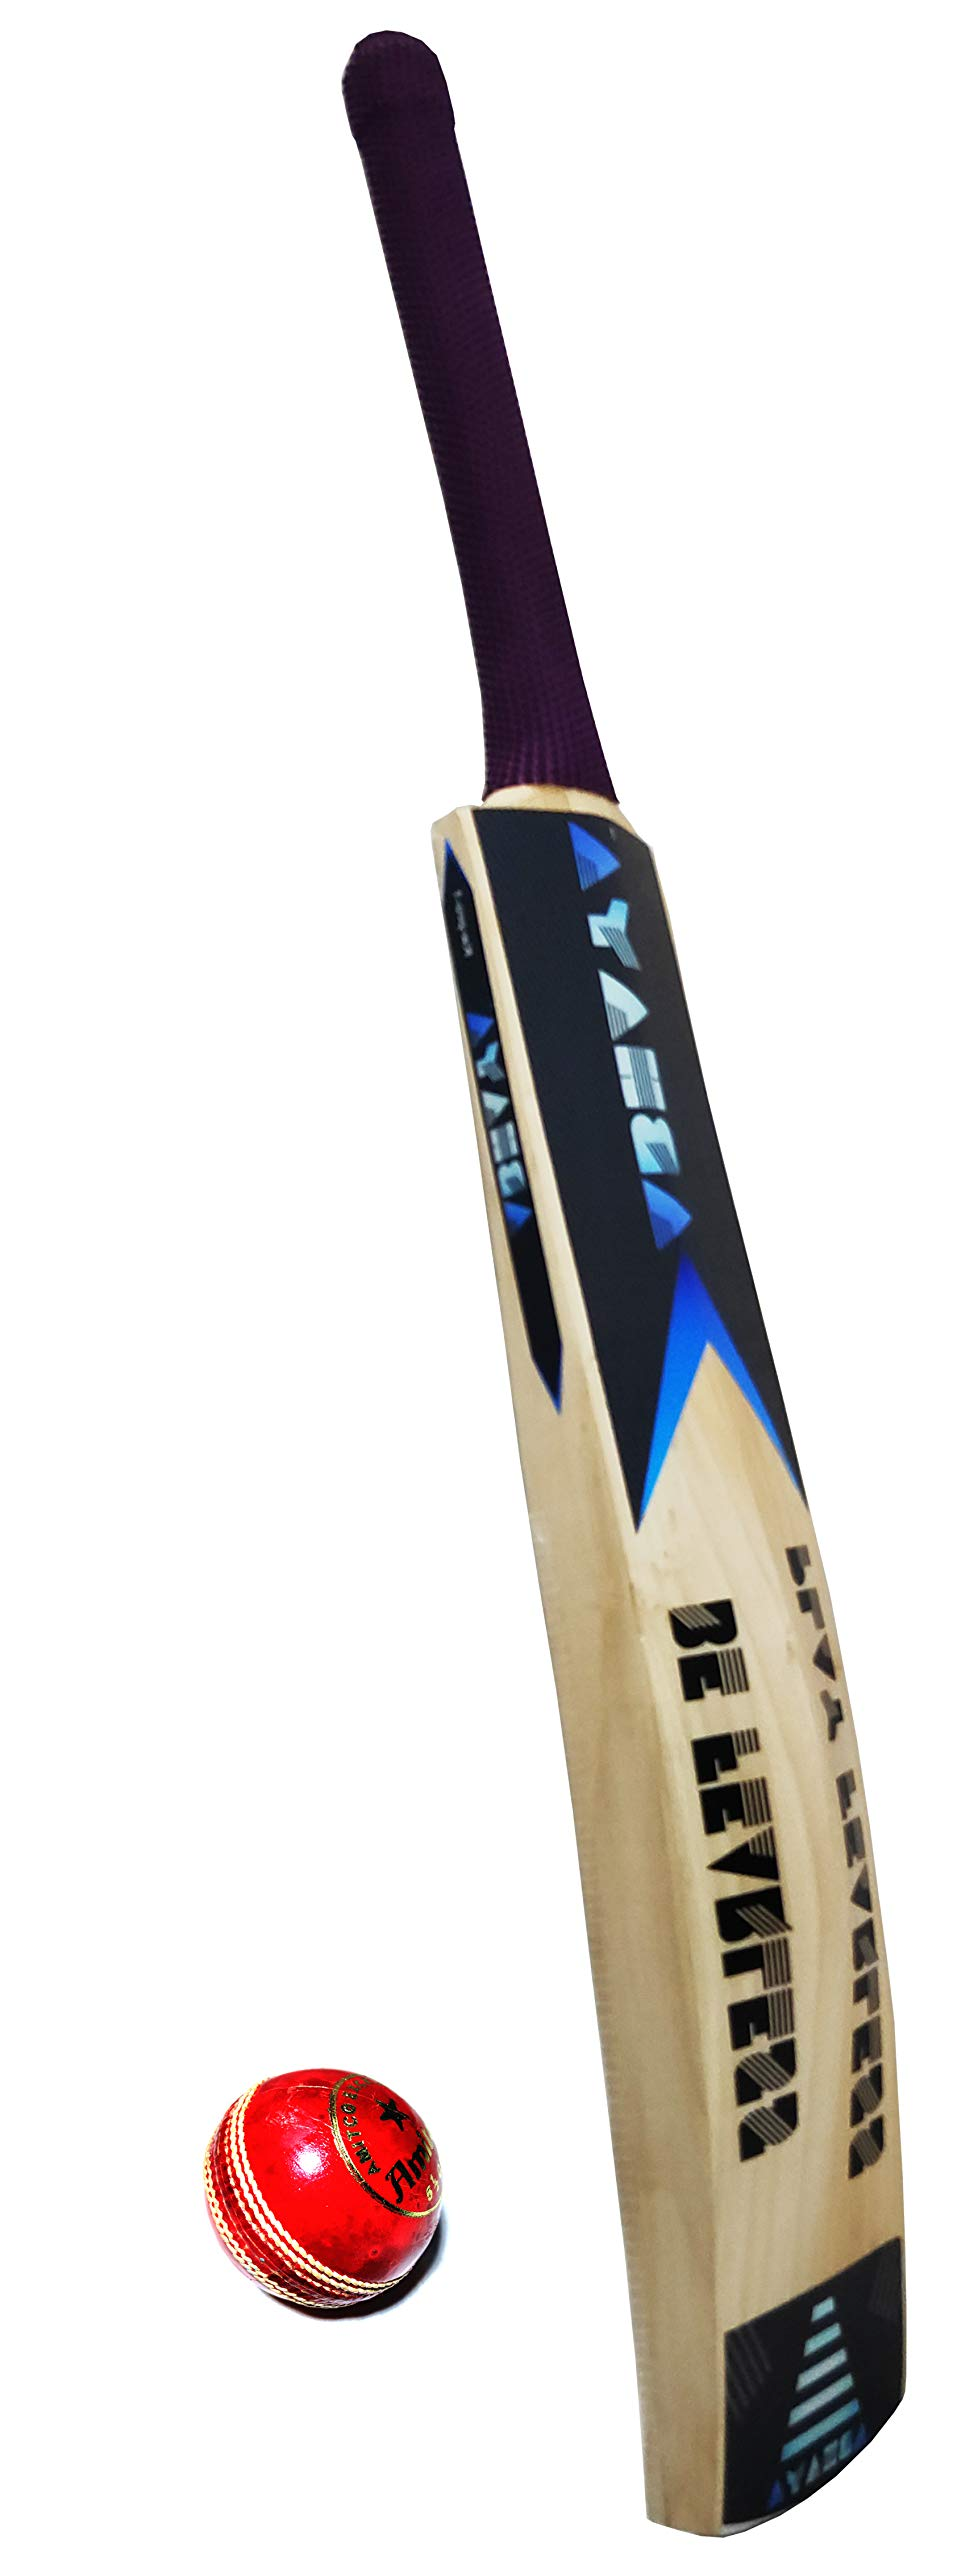 Amazon price history for ABHAYA Leather Bat Kashmir Willow with Leather Ball for Professional Players + Leather Bat for Cricket for Men & Boys 40mm Edge, Short Handle